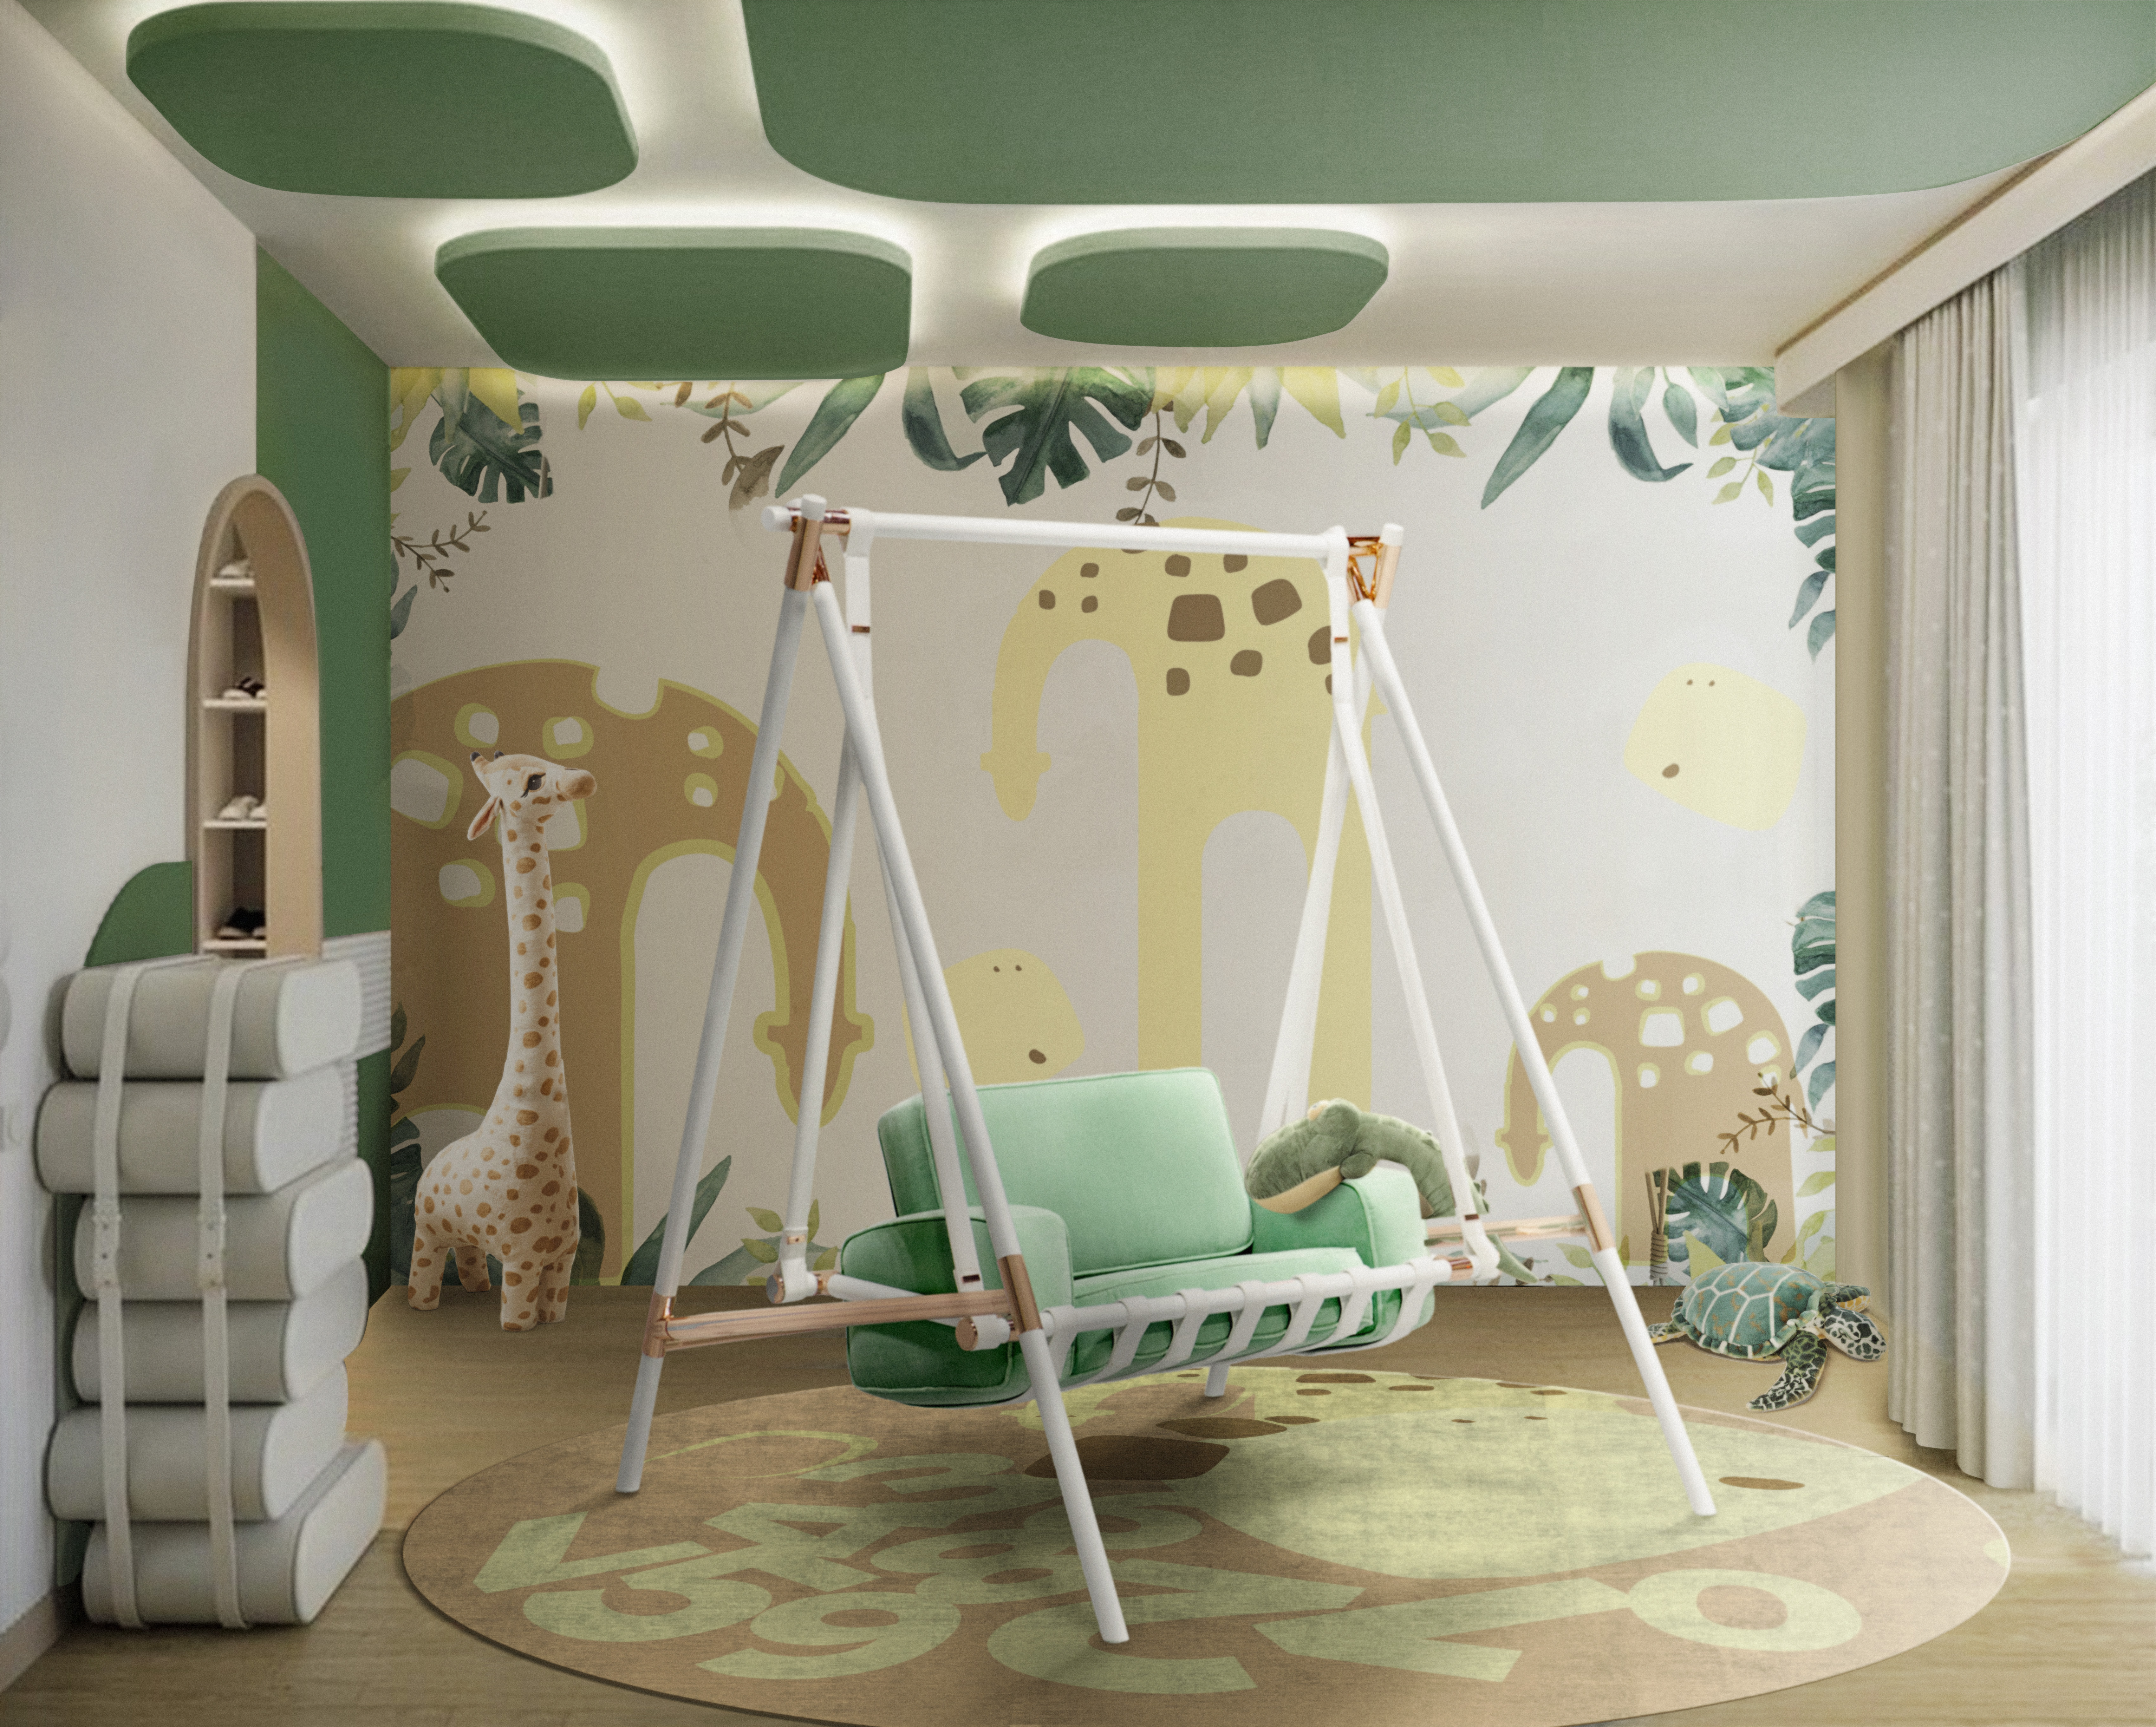 Kids playroom design with Tropical Vibes